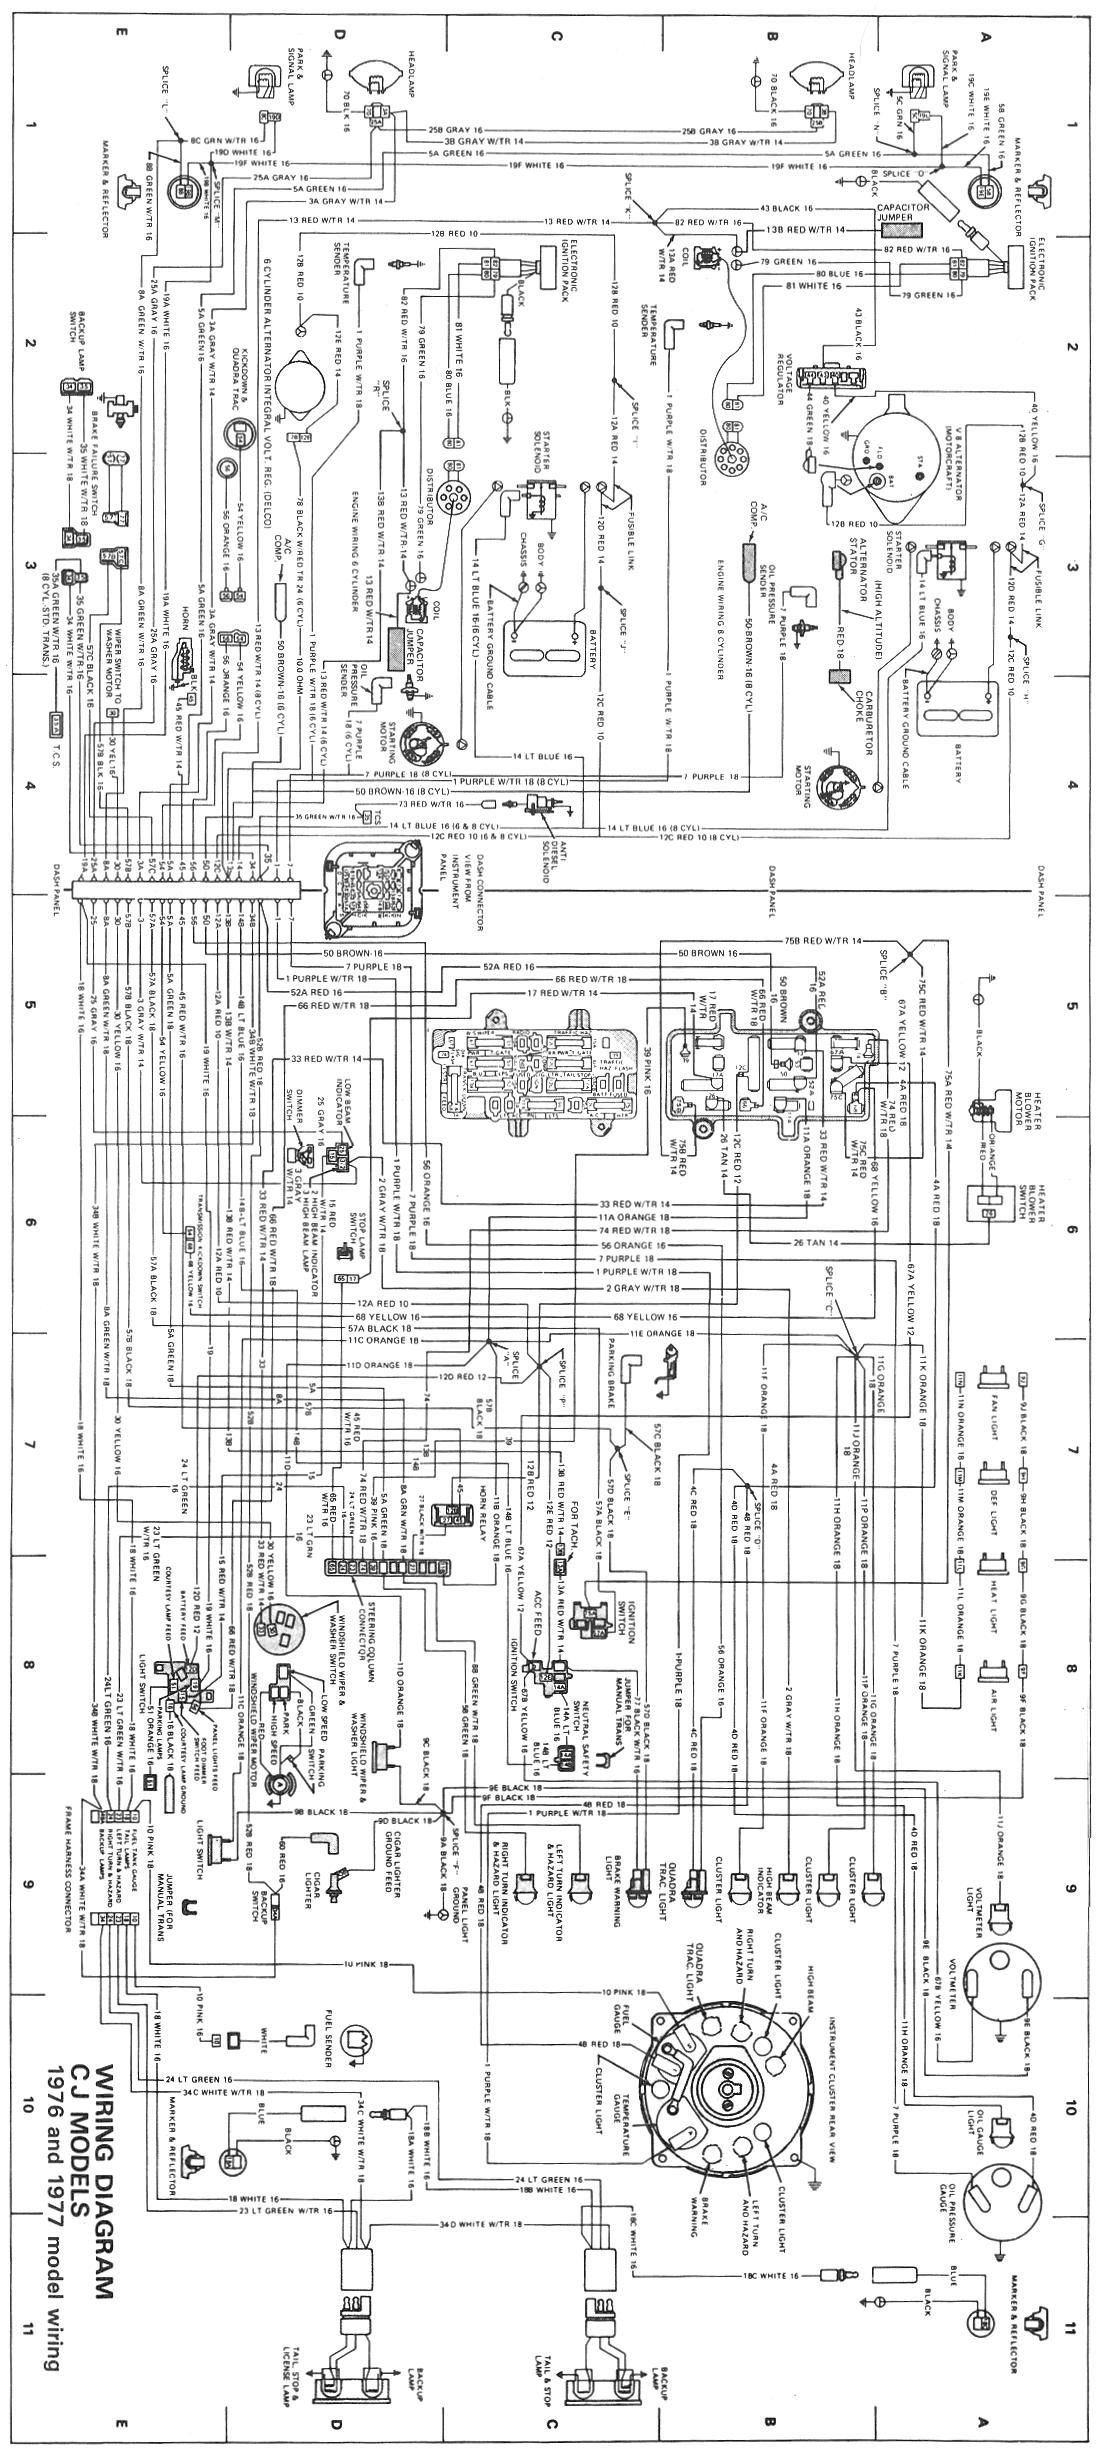 jeep wiring diagrams 1976 and 1977 cj jeep wiring pinterest 1985 jeep cj7 electrical diagram 1977 jeep cj7 diagram [ 1100 x 2459 Pixel ]